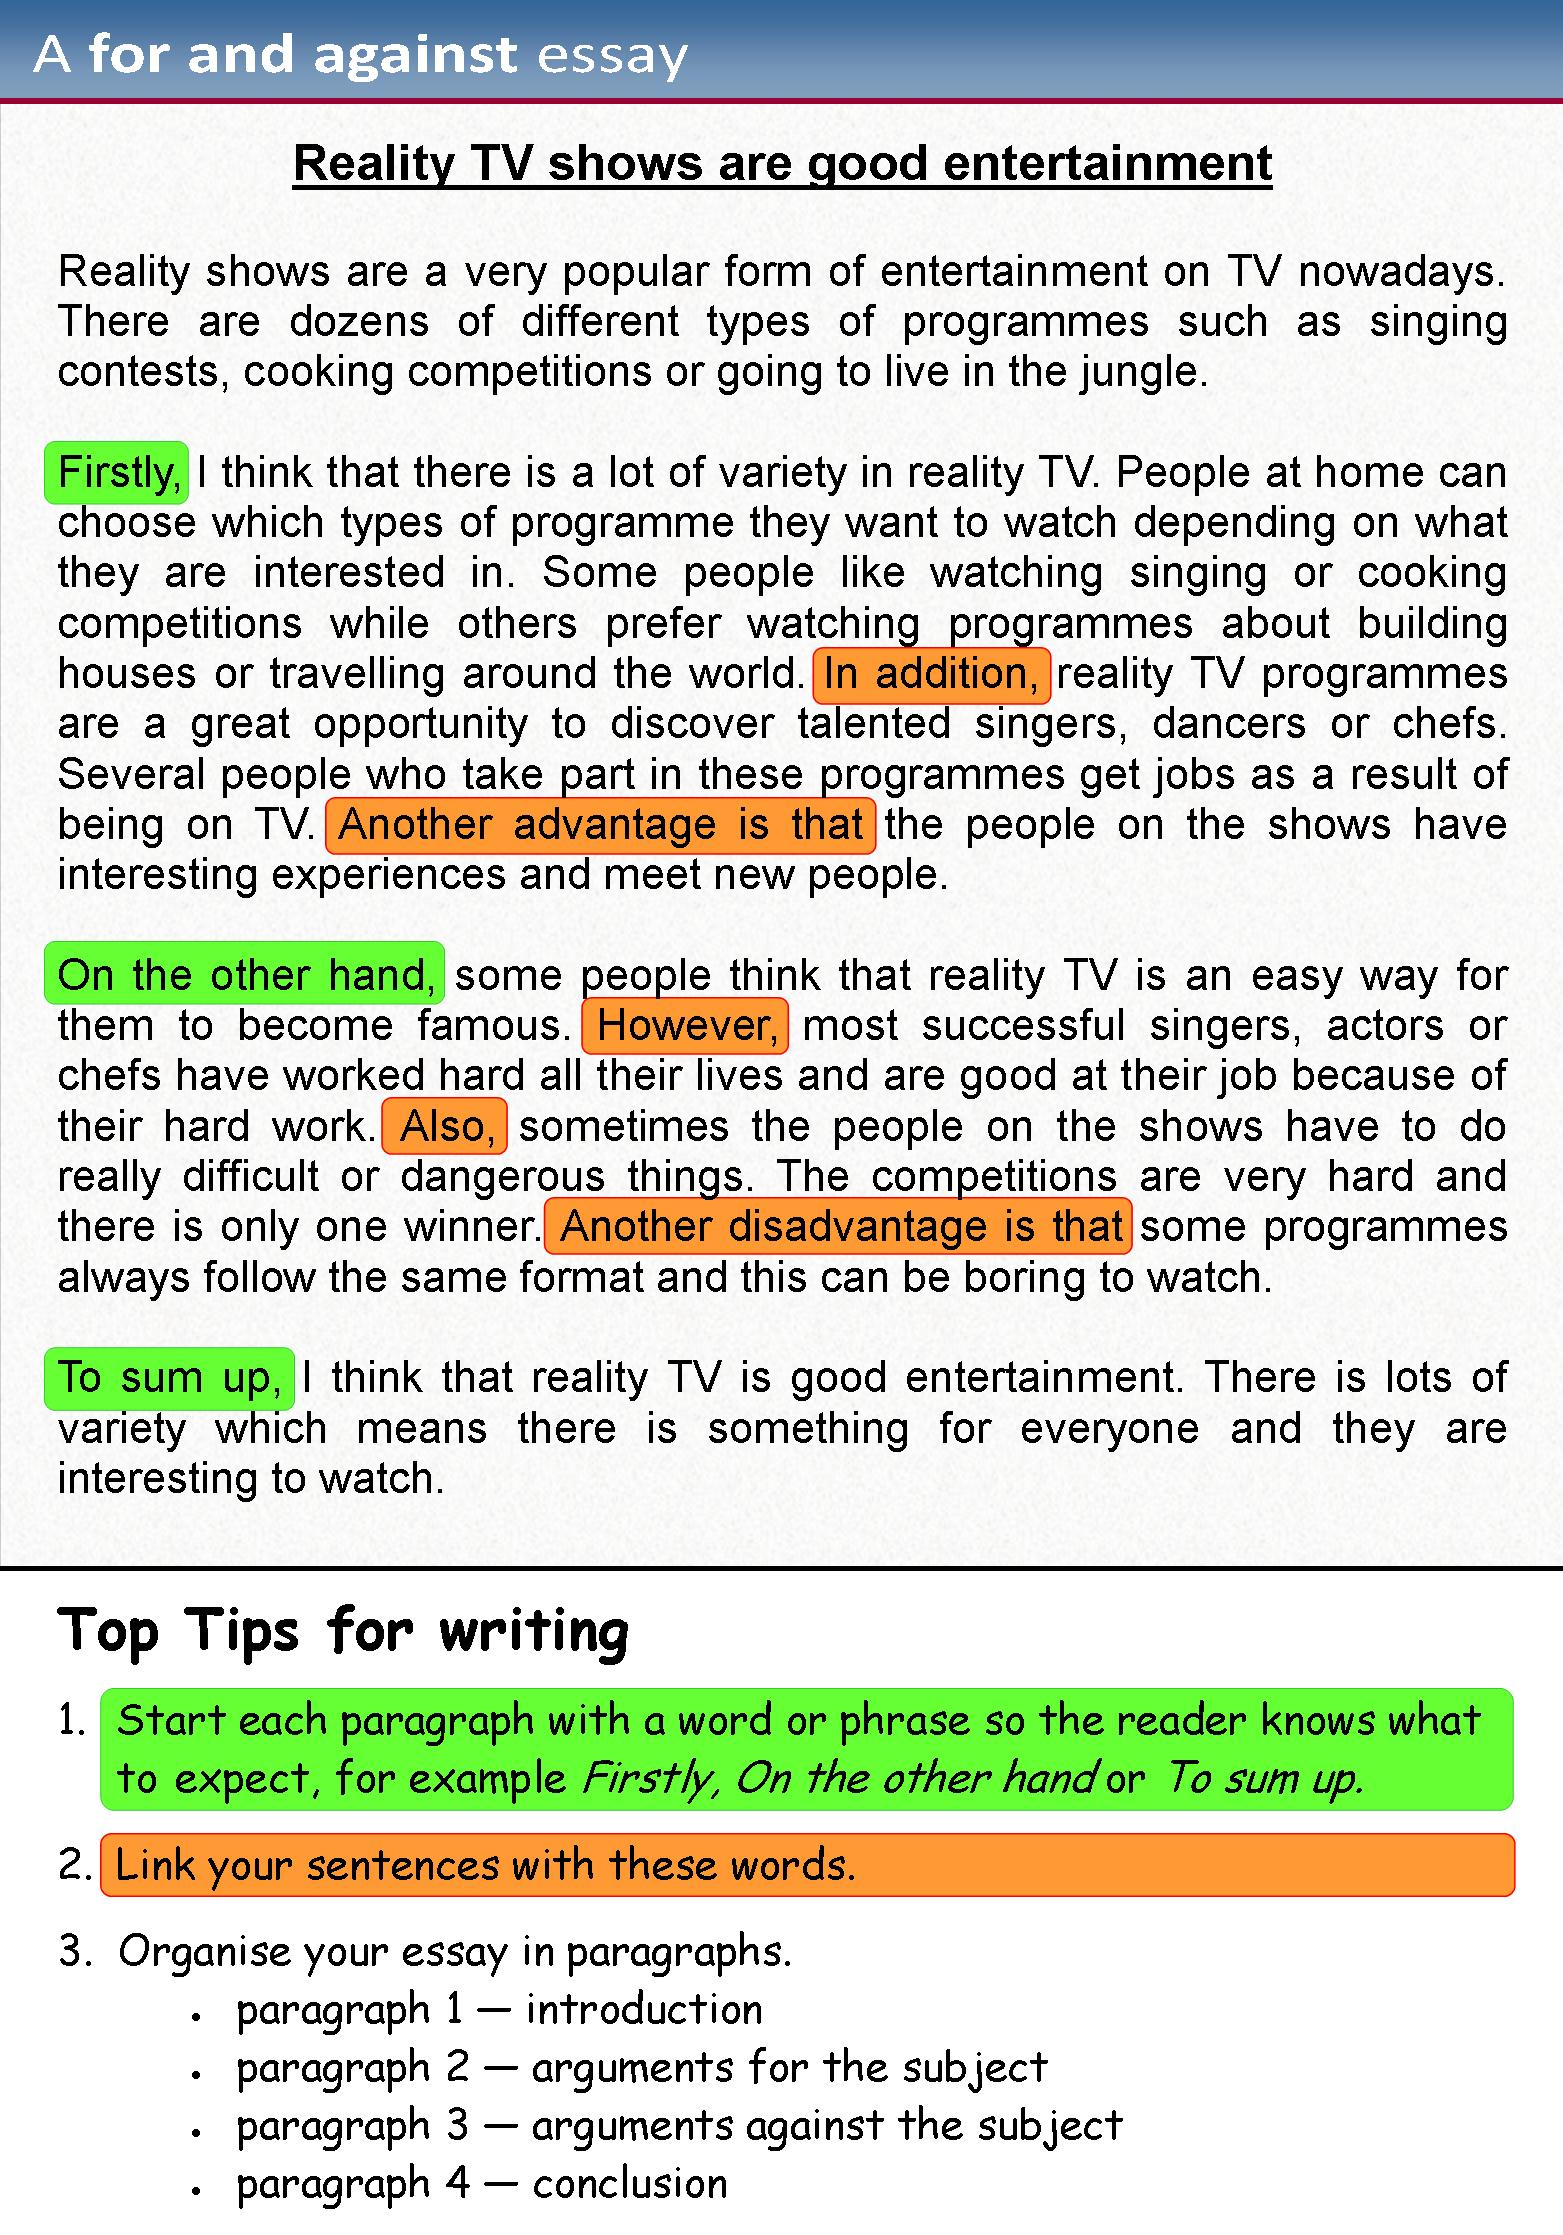 016 For Against Essay 1 Funny Essays Stupendous Topics Written By Students College Full